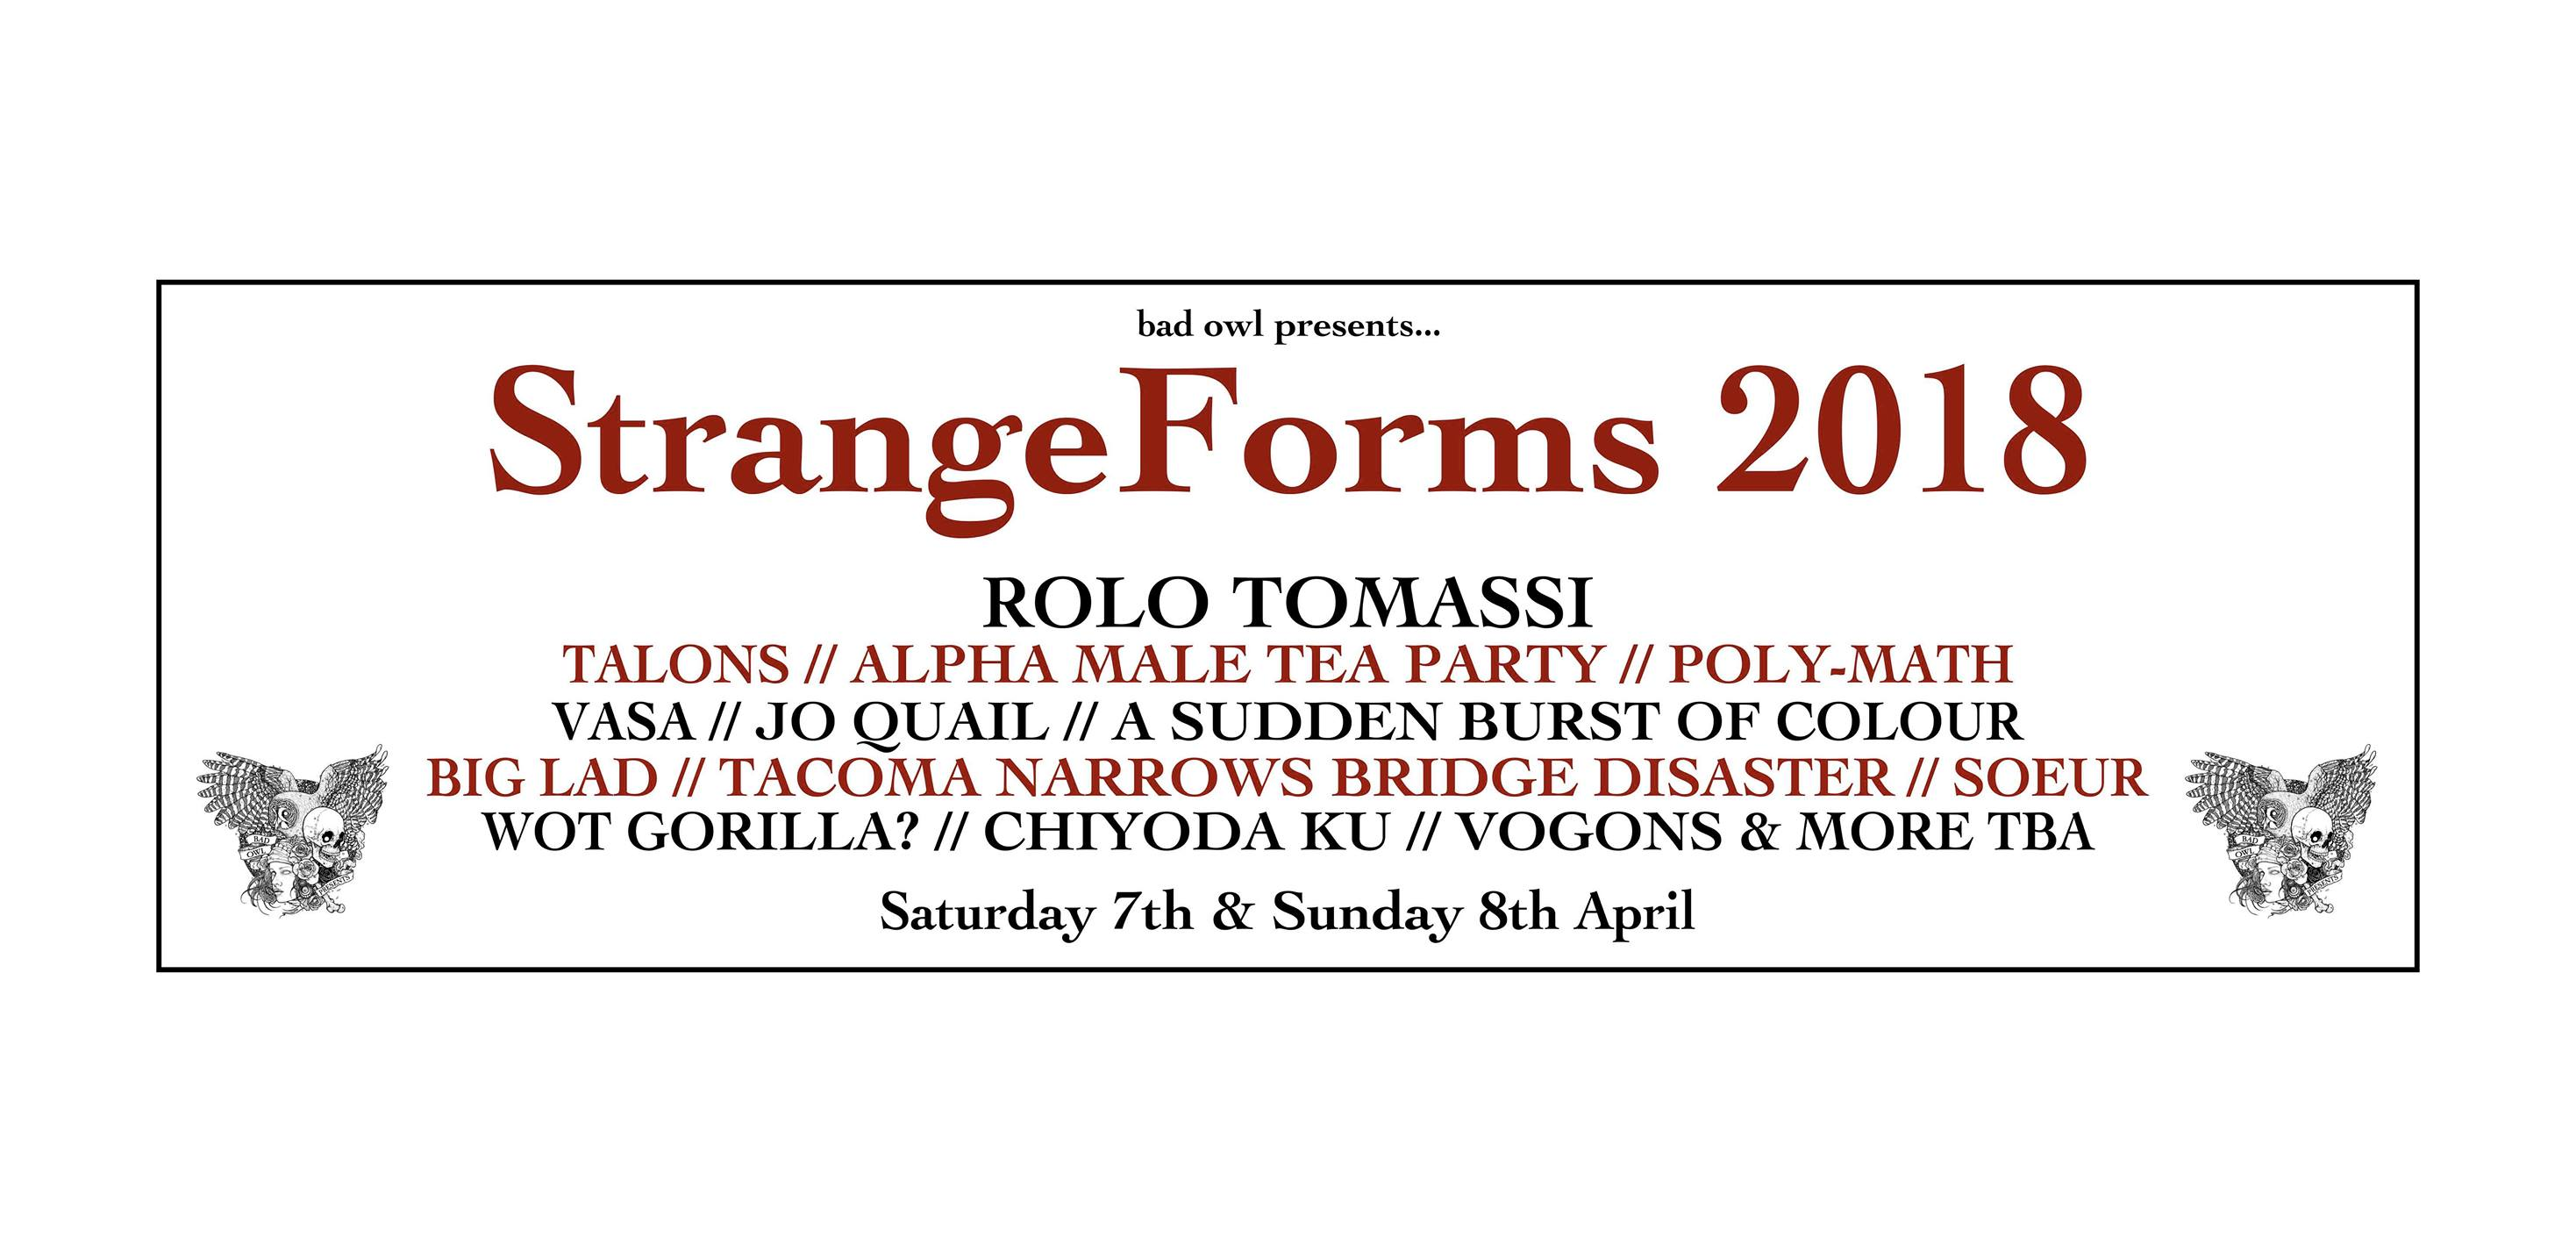 Stangeforms Leeds 2018 7th – 8th April 2018